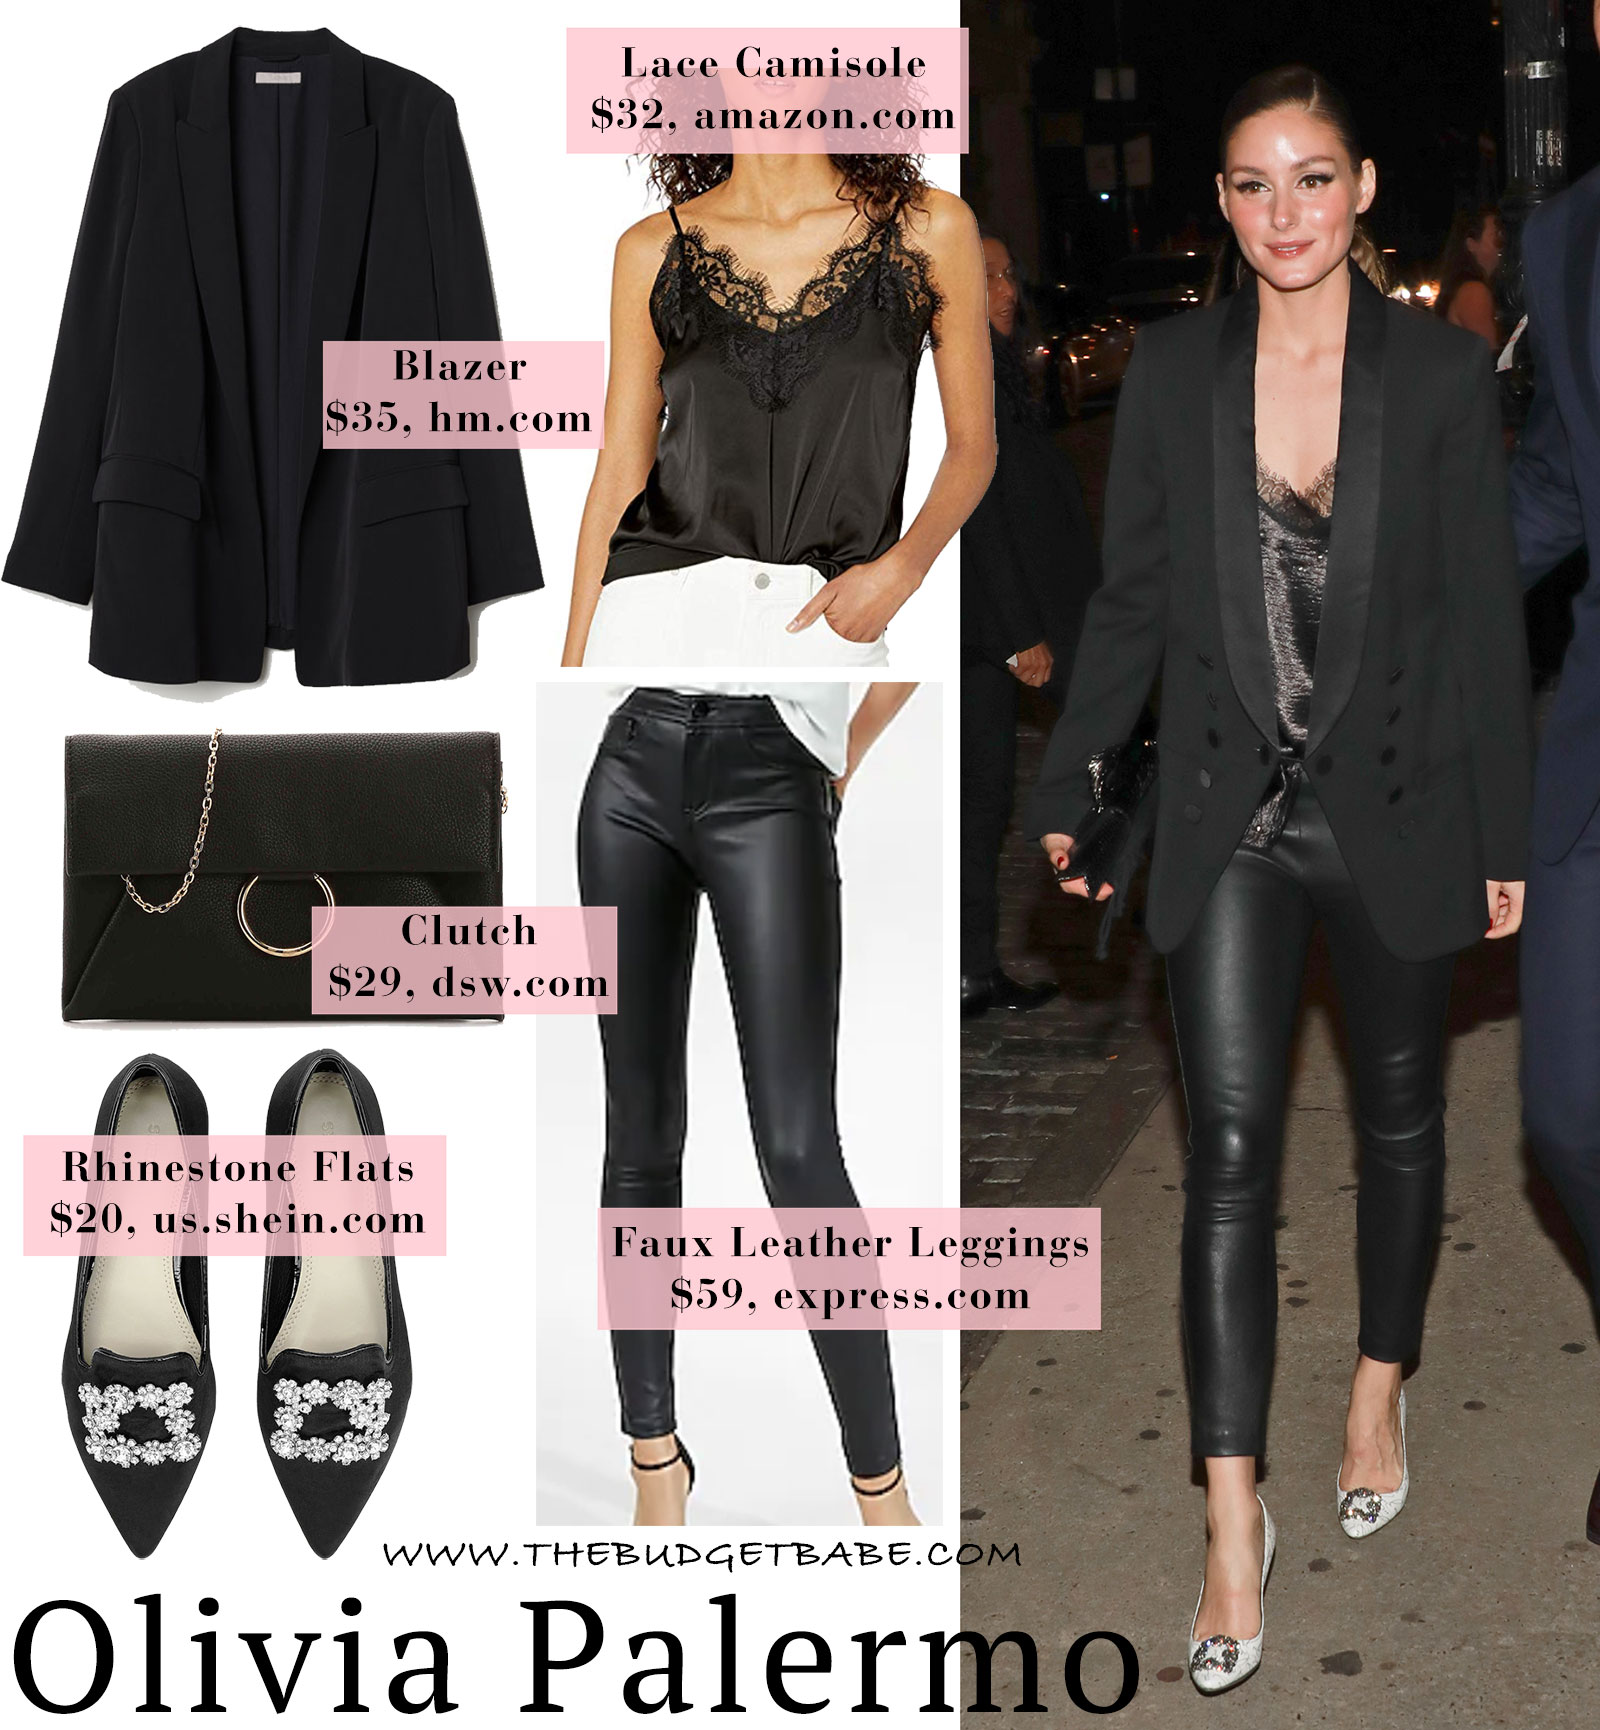 Olivia Palermo going-out outfit idea